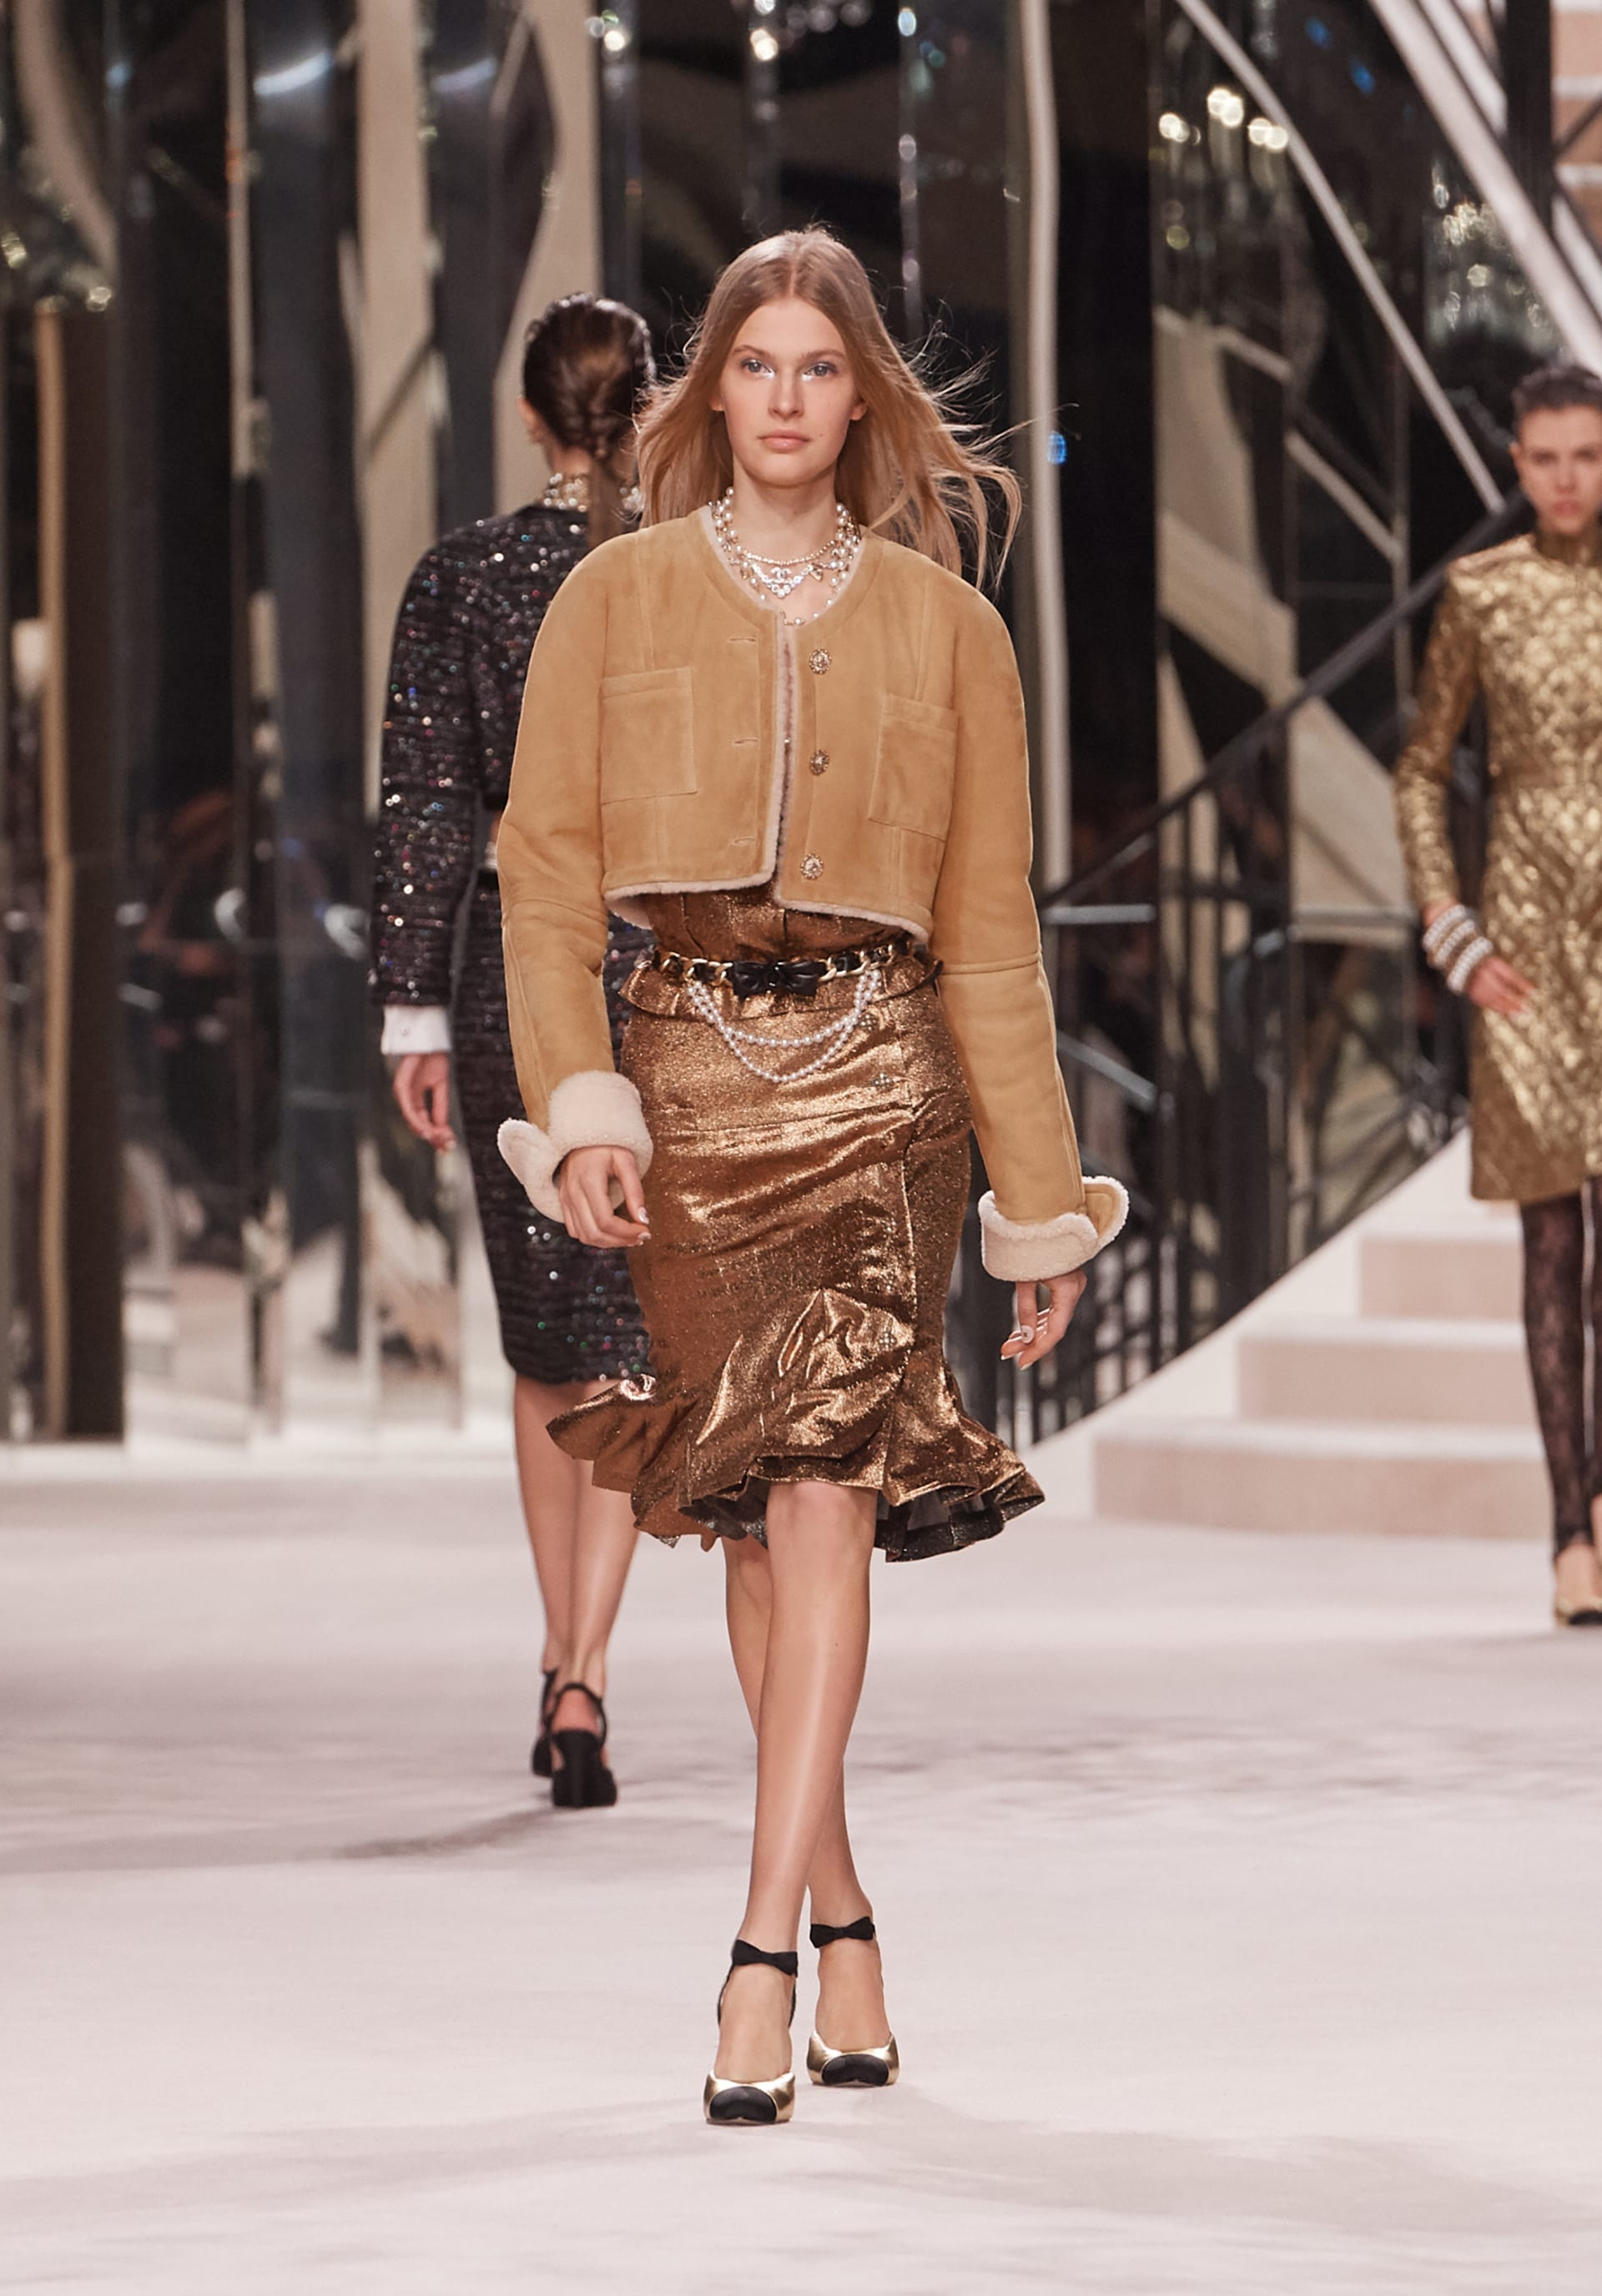 View 1 - Look 50 - Métiers d'Art 2019/20 - see full sized version